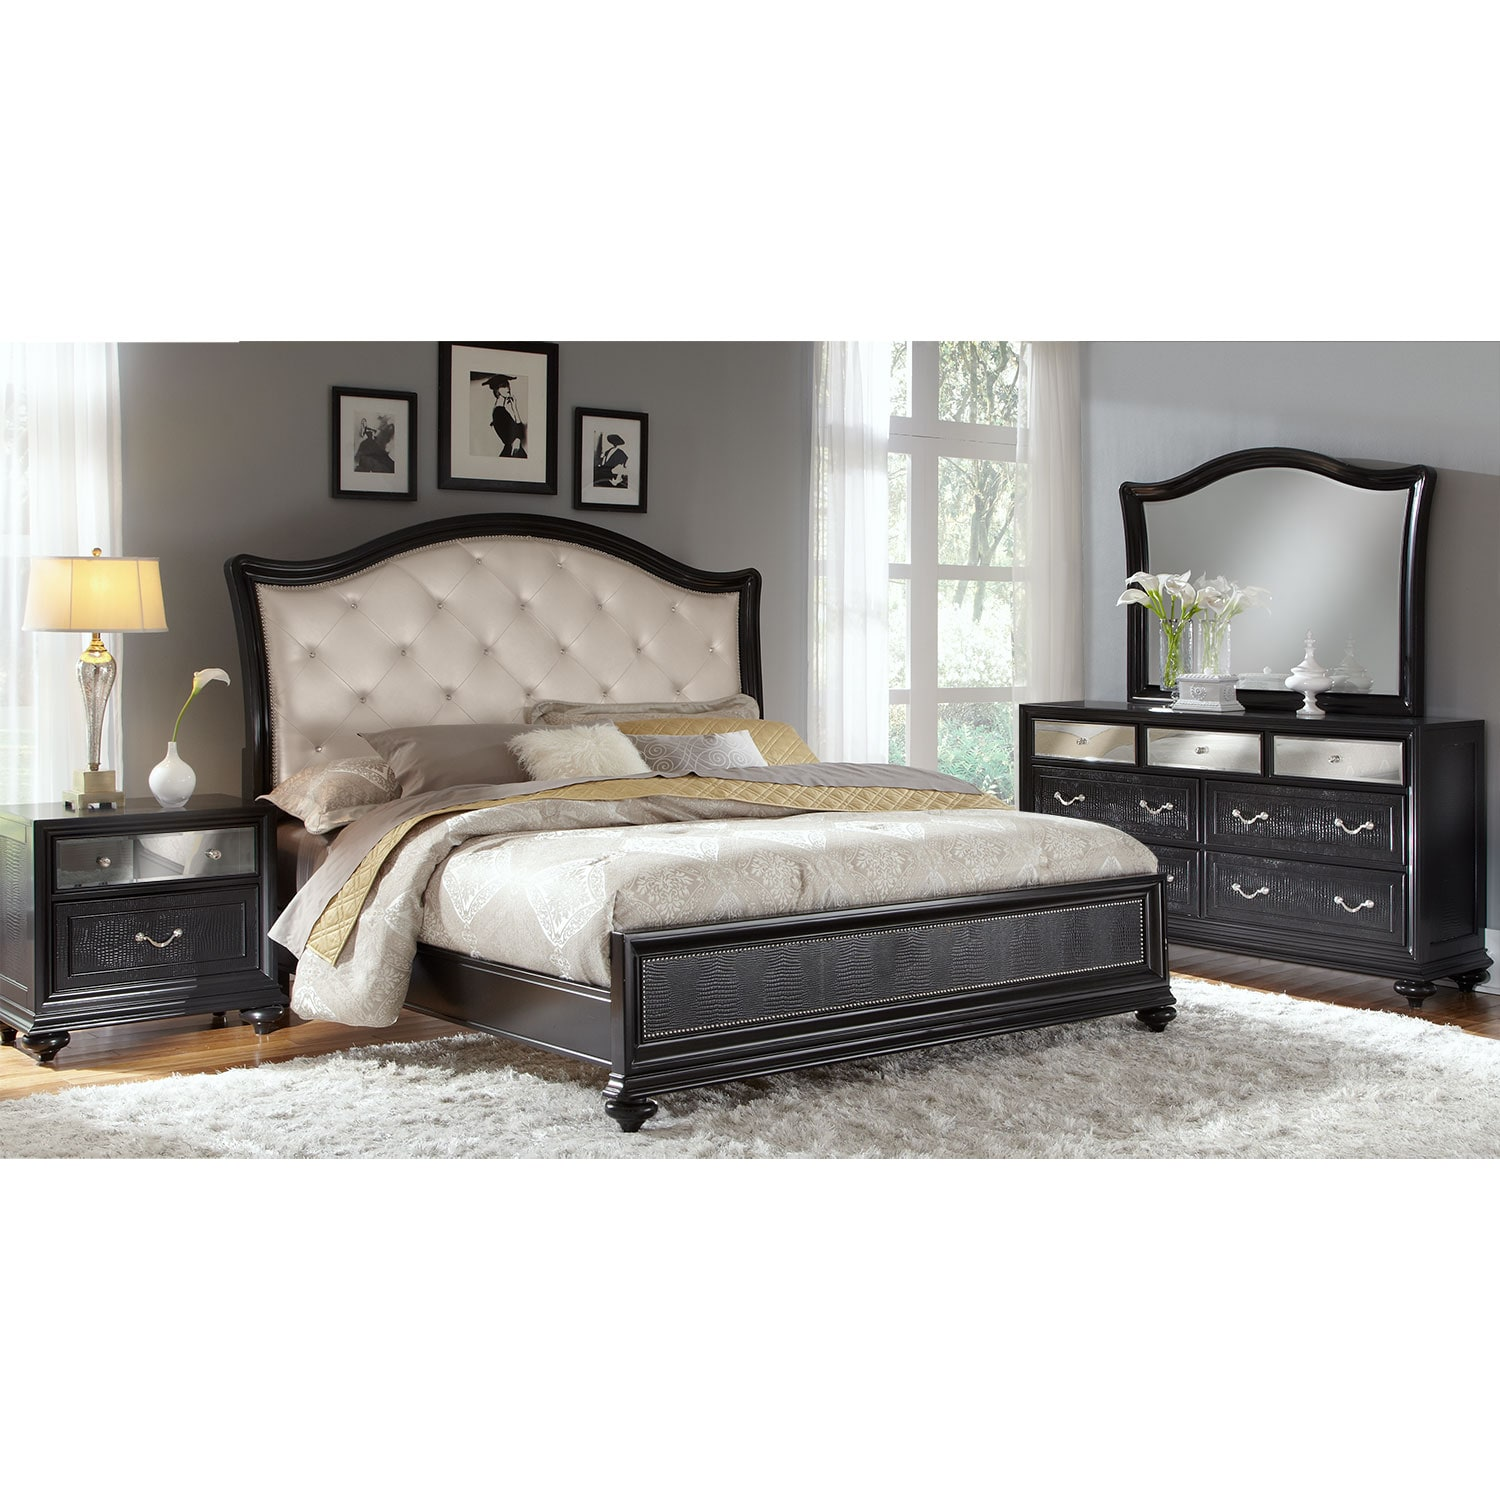 6 Piece Queen Bedroom Set Ebony Hover To Zoom